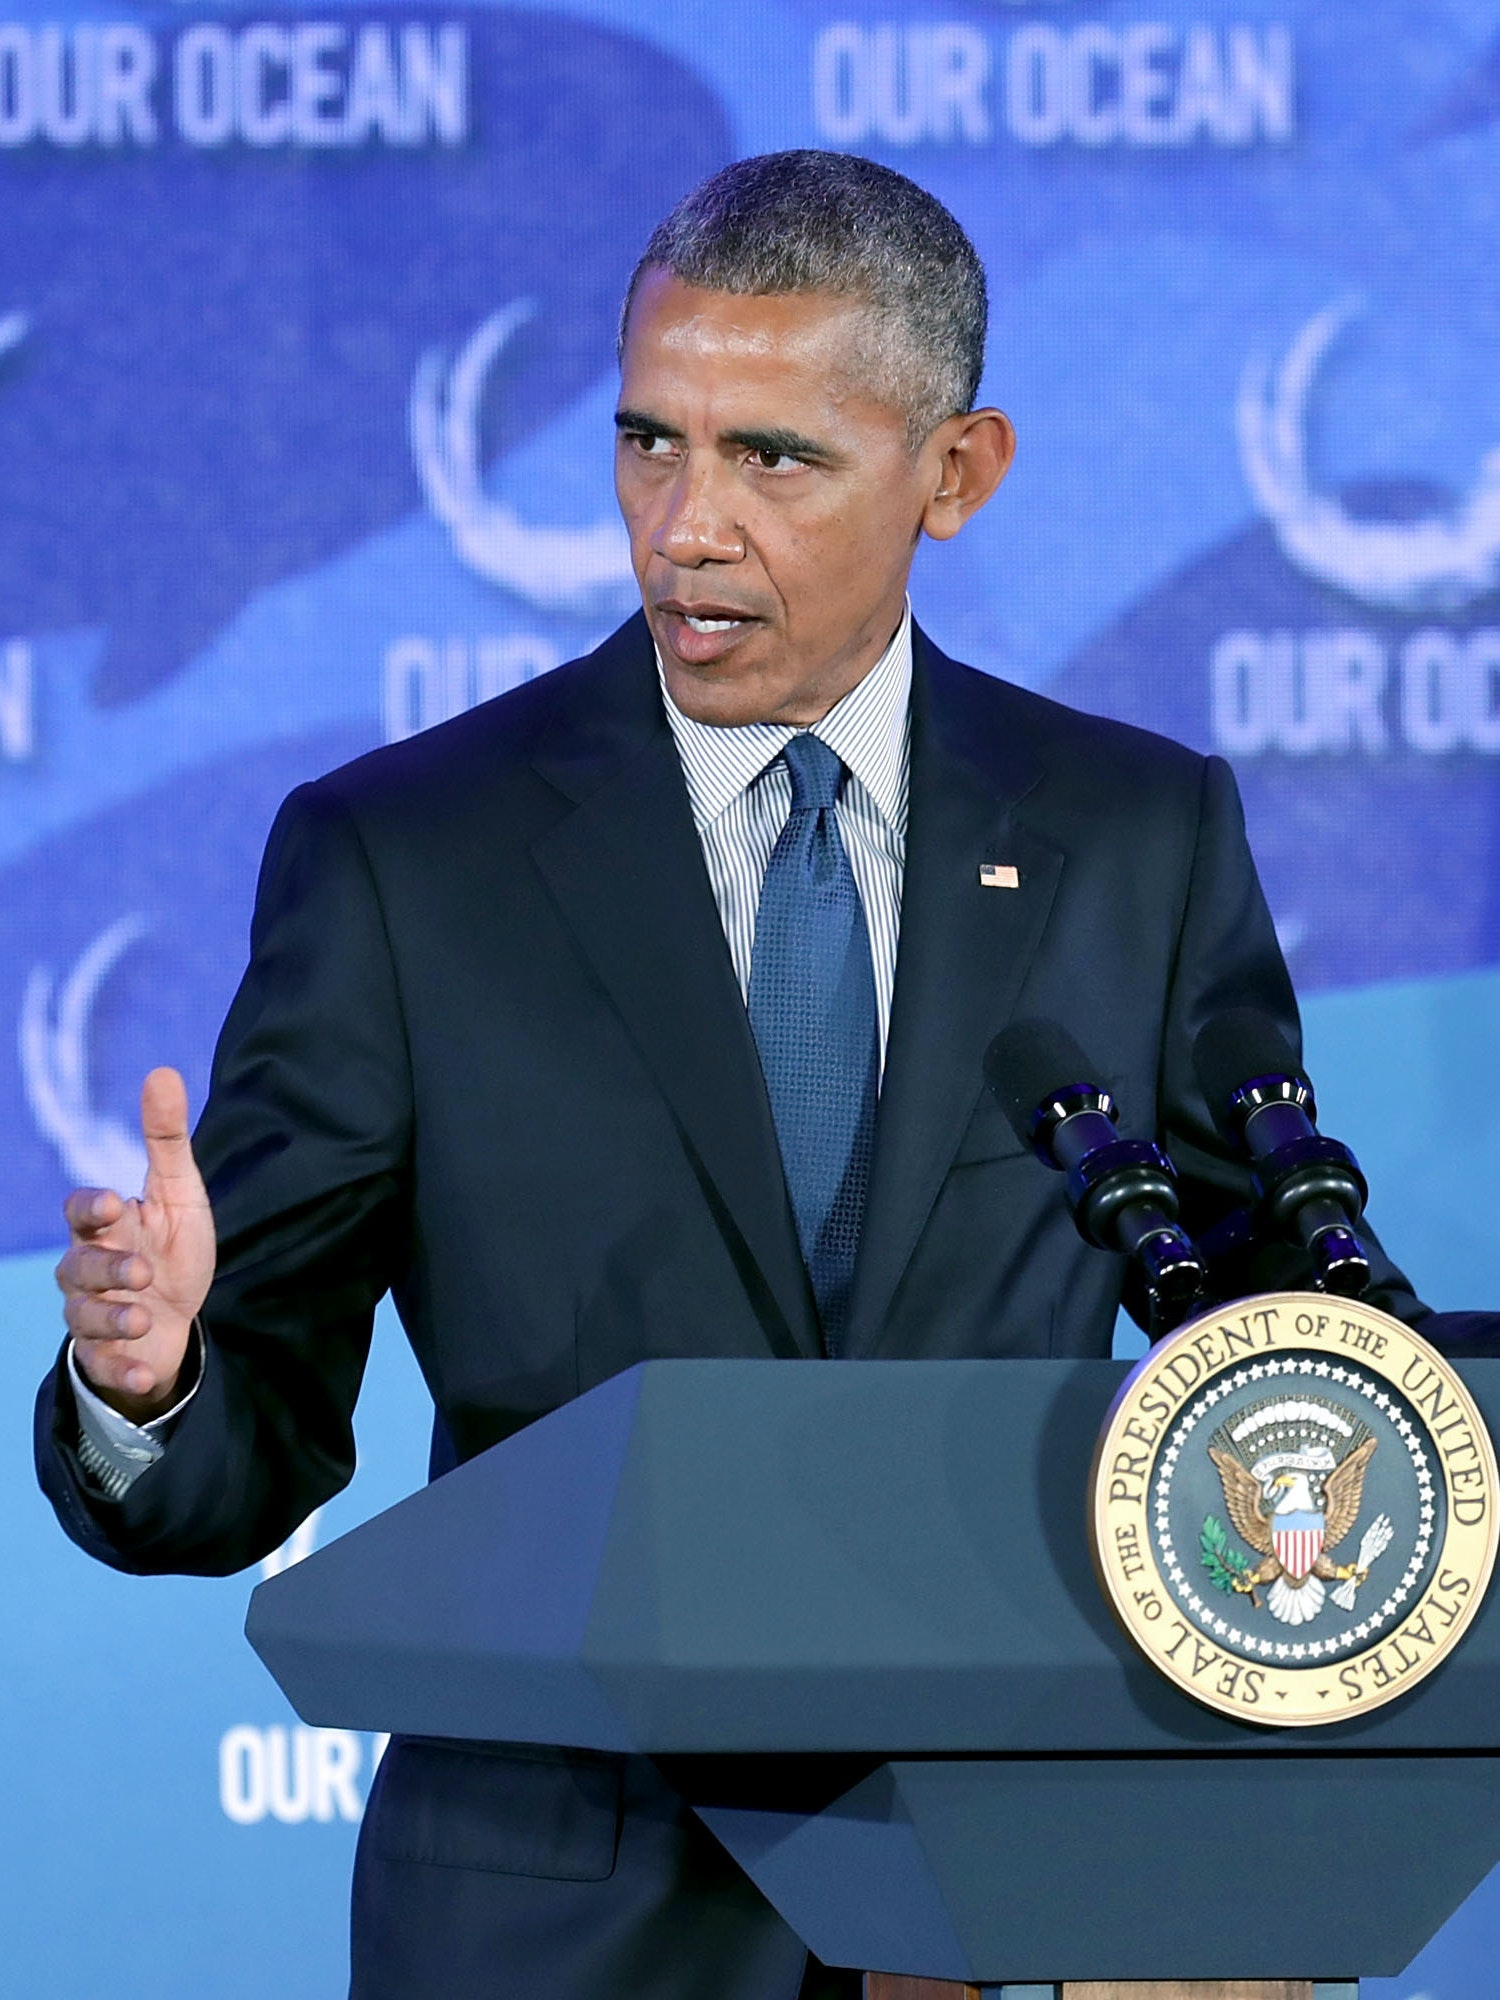 WASHINGTON, DC - SEPTEMBER 15:  U.S. President Barack Obama delivers remarks at the Our Oceans conference at the State Department's Harry S. Truman building September 15, 2016 in Washington, DC. According to the State Department, the conference will bring scientists, political leaders and advocates together to focus on 'key ocean issues of our time Ð marine protected areas, sustainable fisheries, marine pollution, and climate-related impacts on the ocean.'  (Photo by Chip Somodevilla/Getty Images)